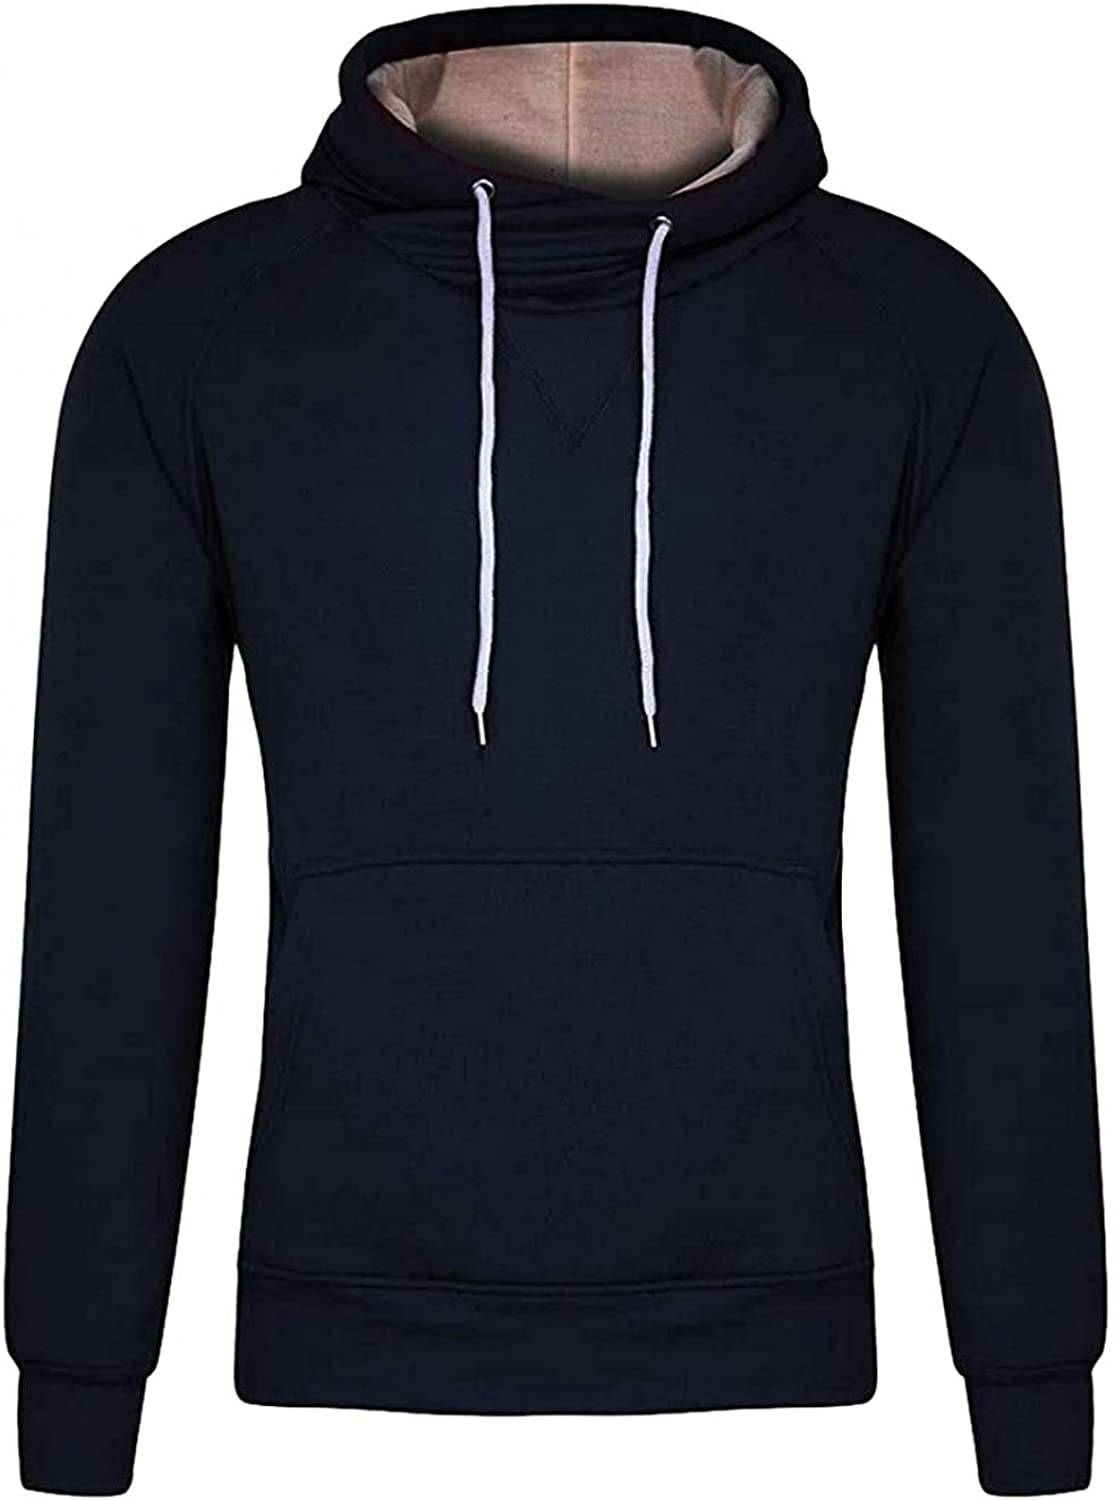 Men Hooded Sweatshirts Casual Sports Solid Hoodies Pullover Yoga Workout Long Sleeve Tops Men's Blouses with Pocket